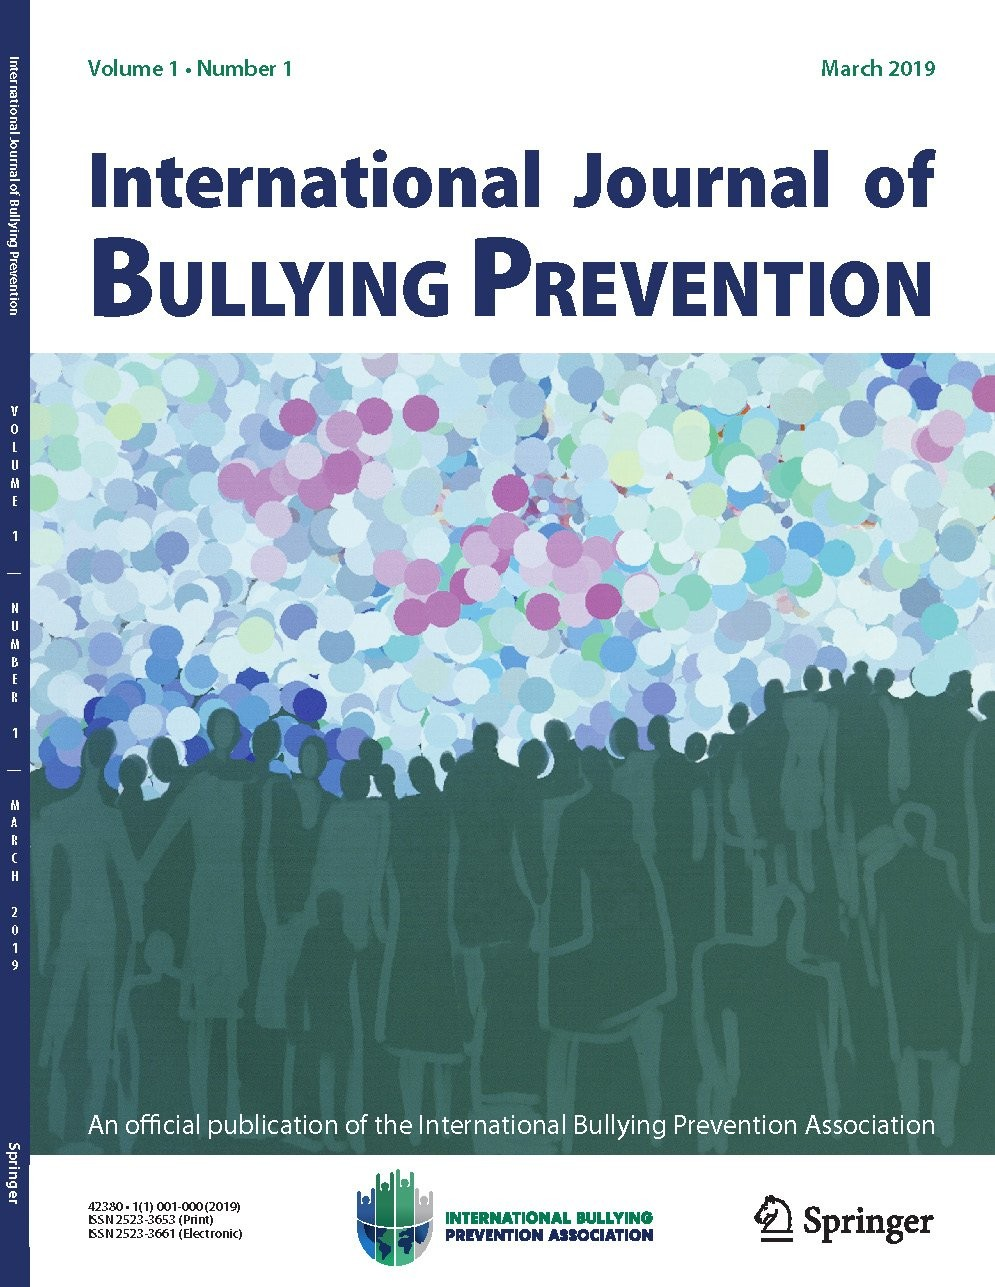 International Journal of Bullying Prevention